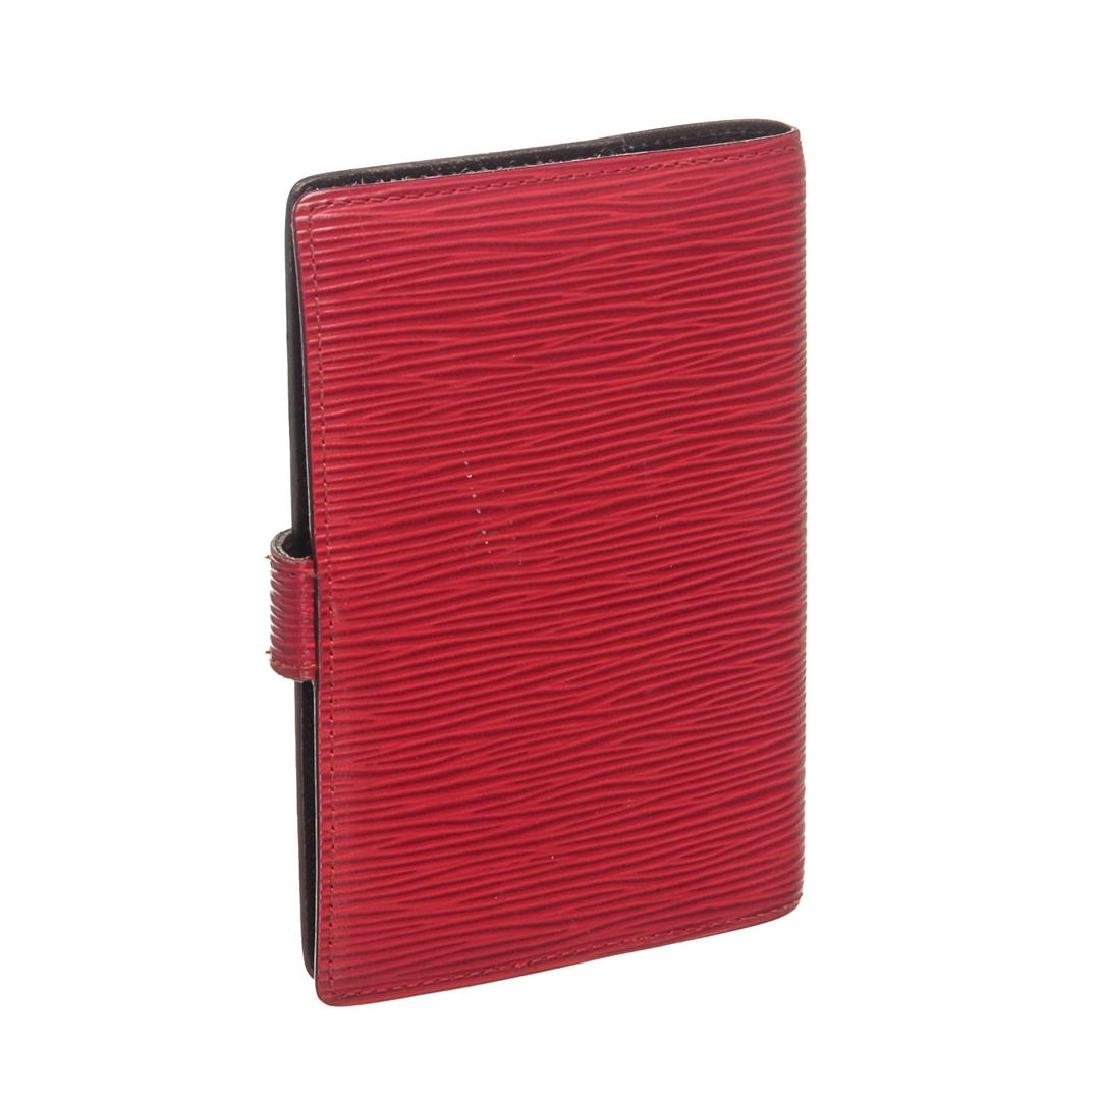 Louis Vuitton Red Epi Leather Small Ring Agenda Holder - 8